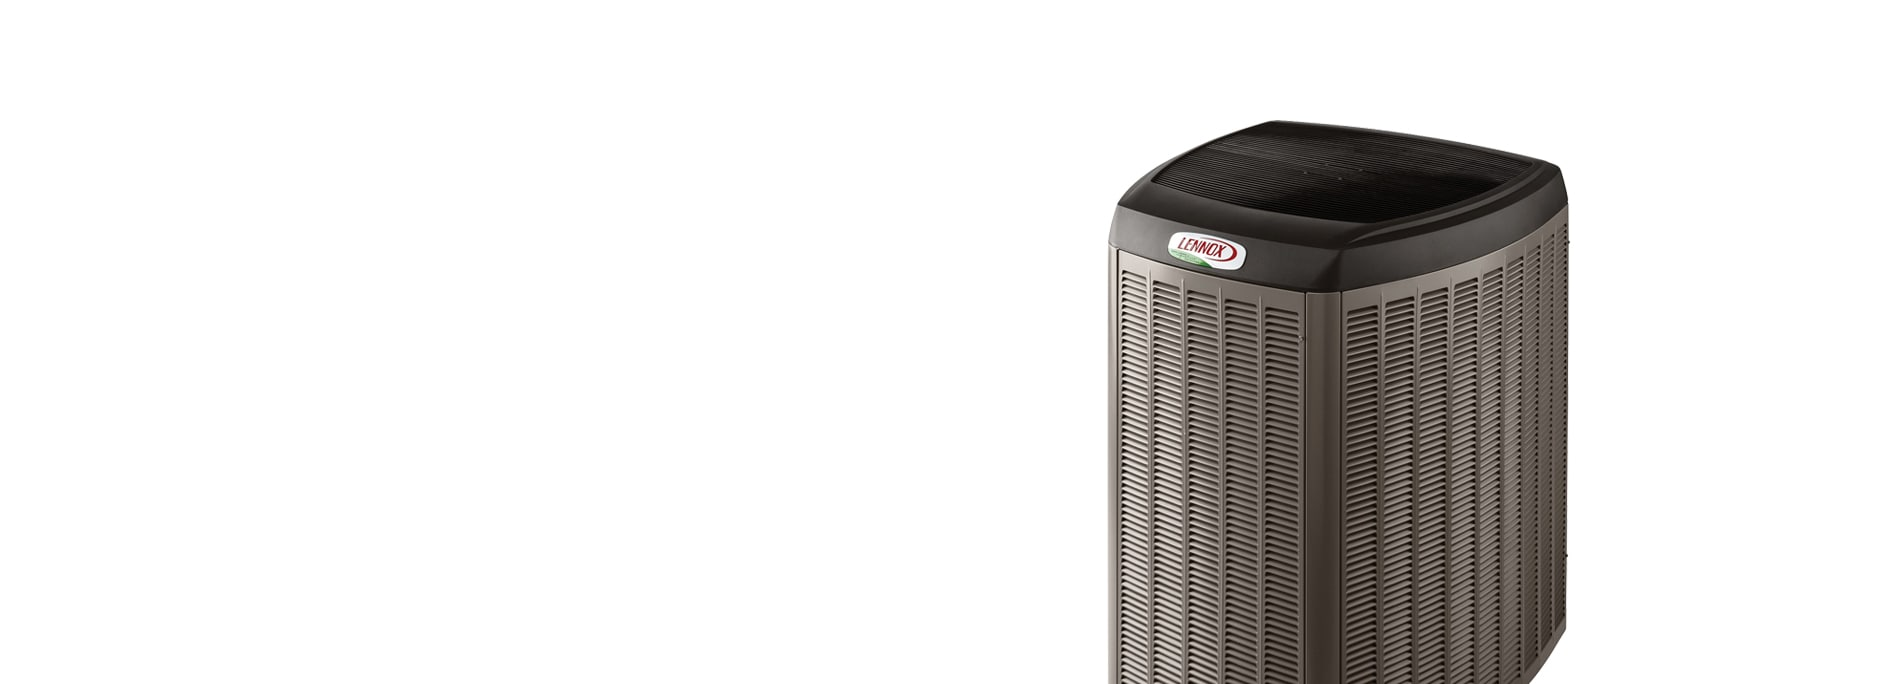 Lennox Air Conditioning Unit